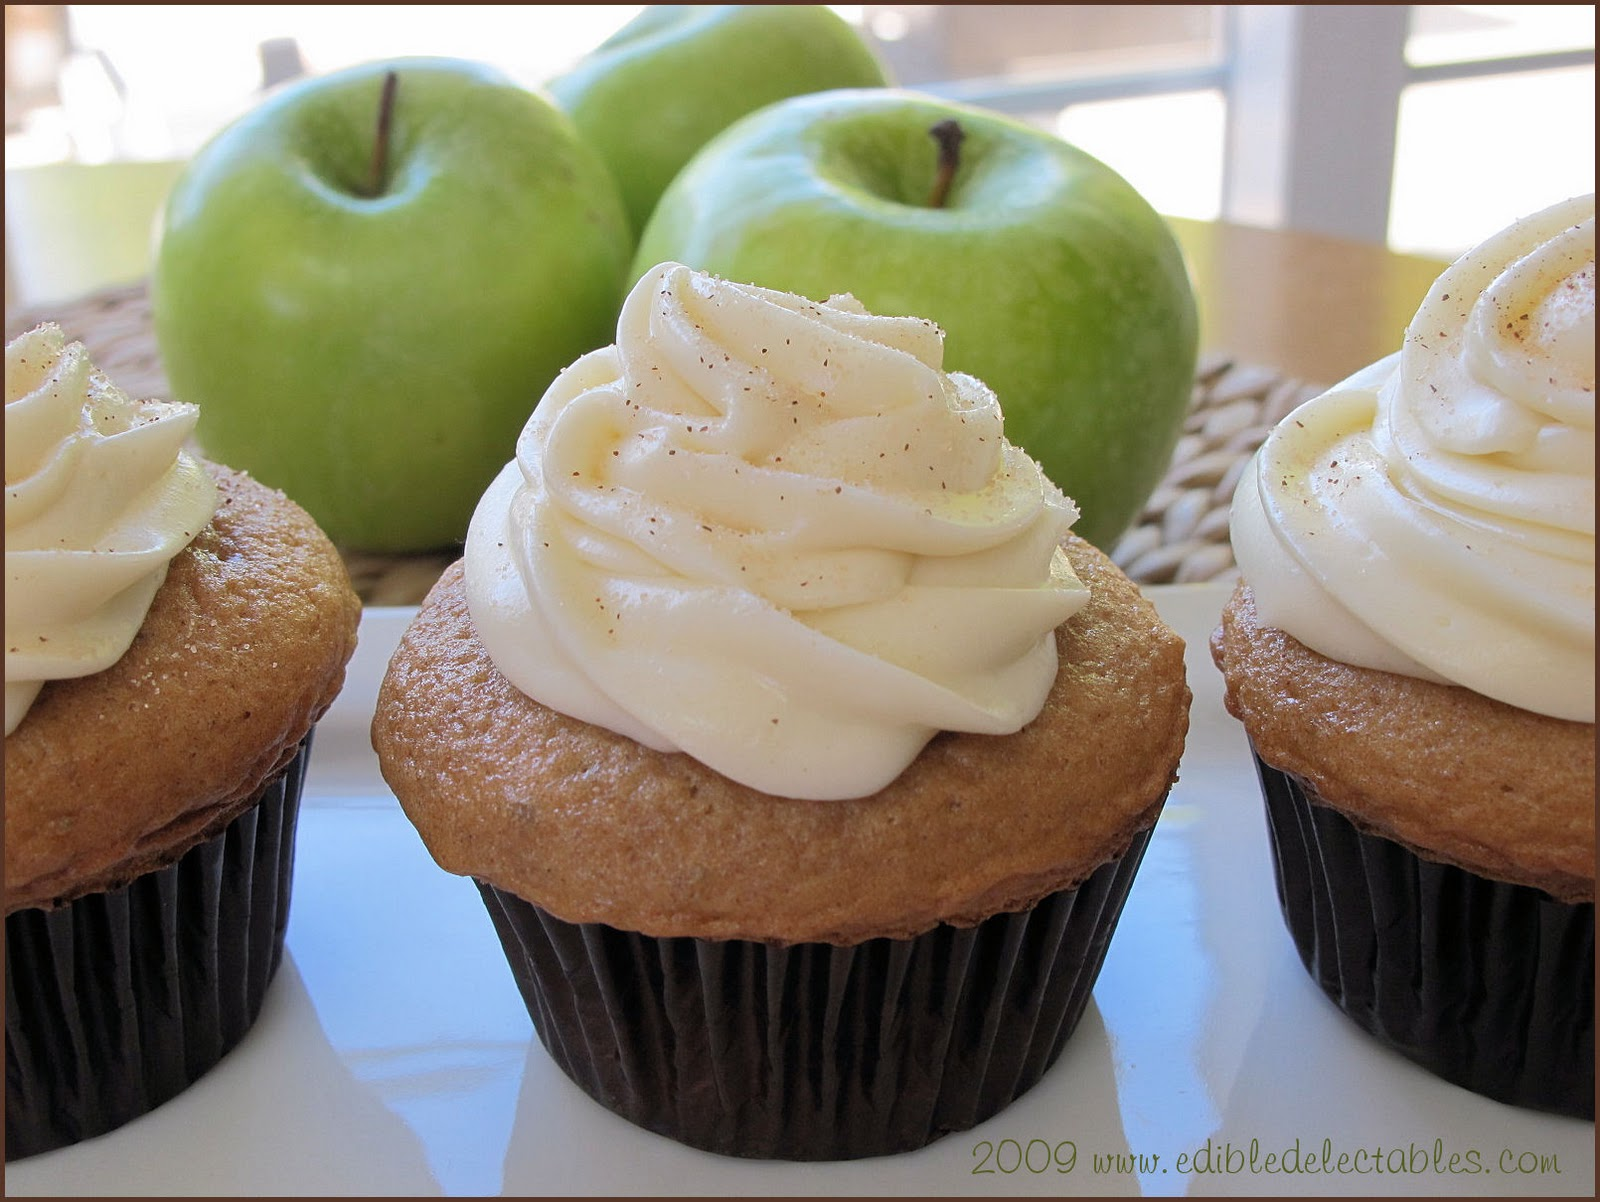 Edible Delectables: Spiced Apple Cupcakes